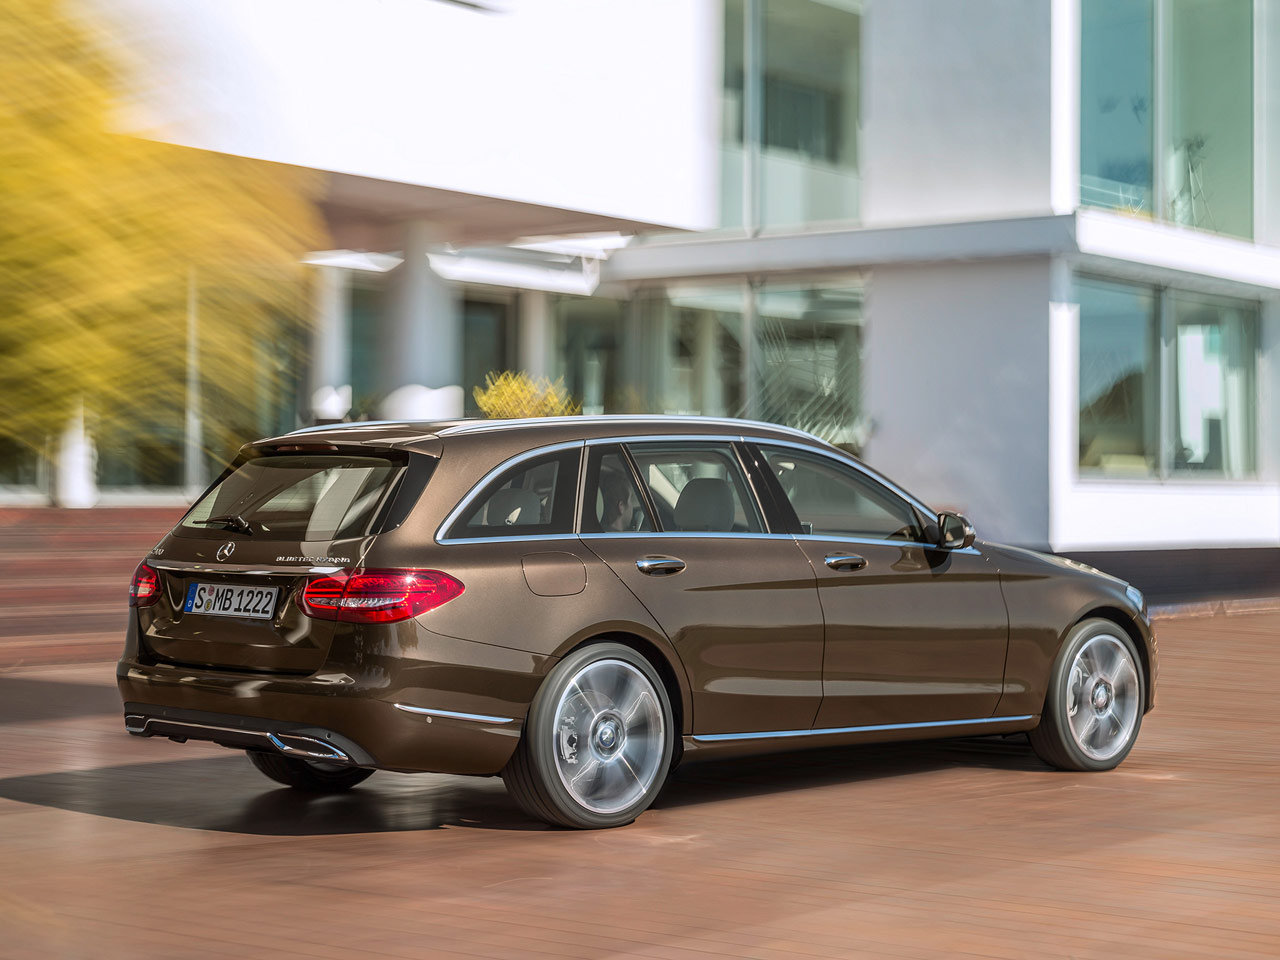 Nuova Mercedes Classe C Station Wagon 2014